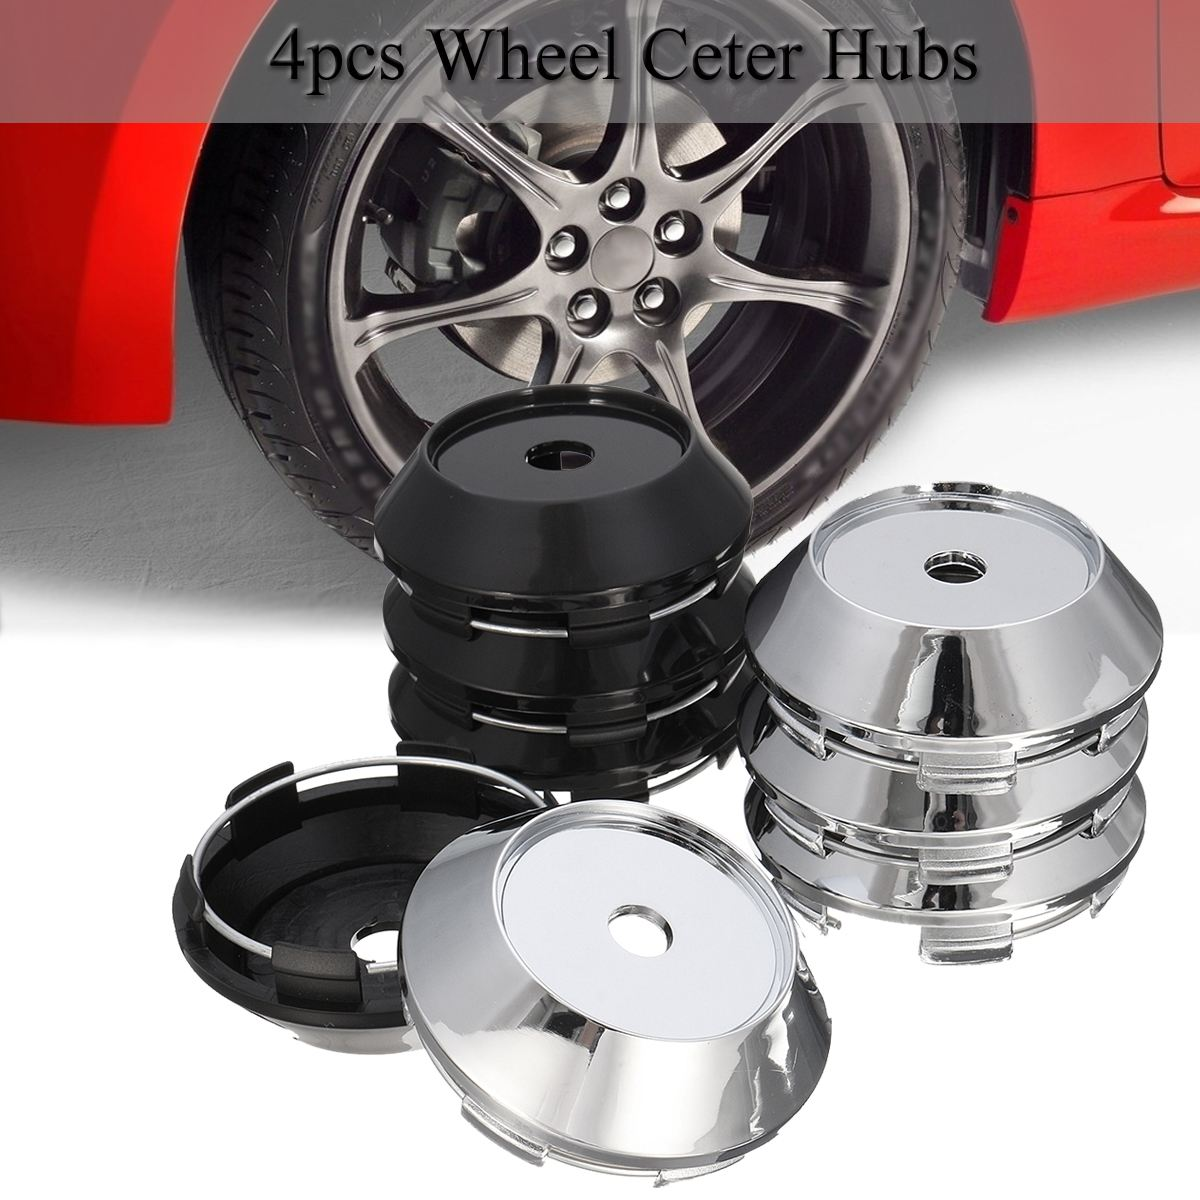 4pcs Universal 68mm ABS Chrome <font><b>Car</b></font> <font><b>Wheel</b></font> Center Plain <font><b>Hub</b></font> Caps <font><b>Covers</b></font> Holder image